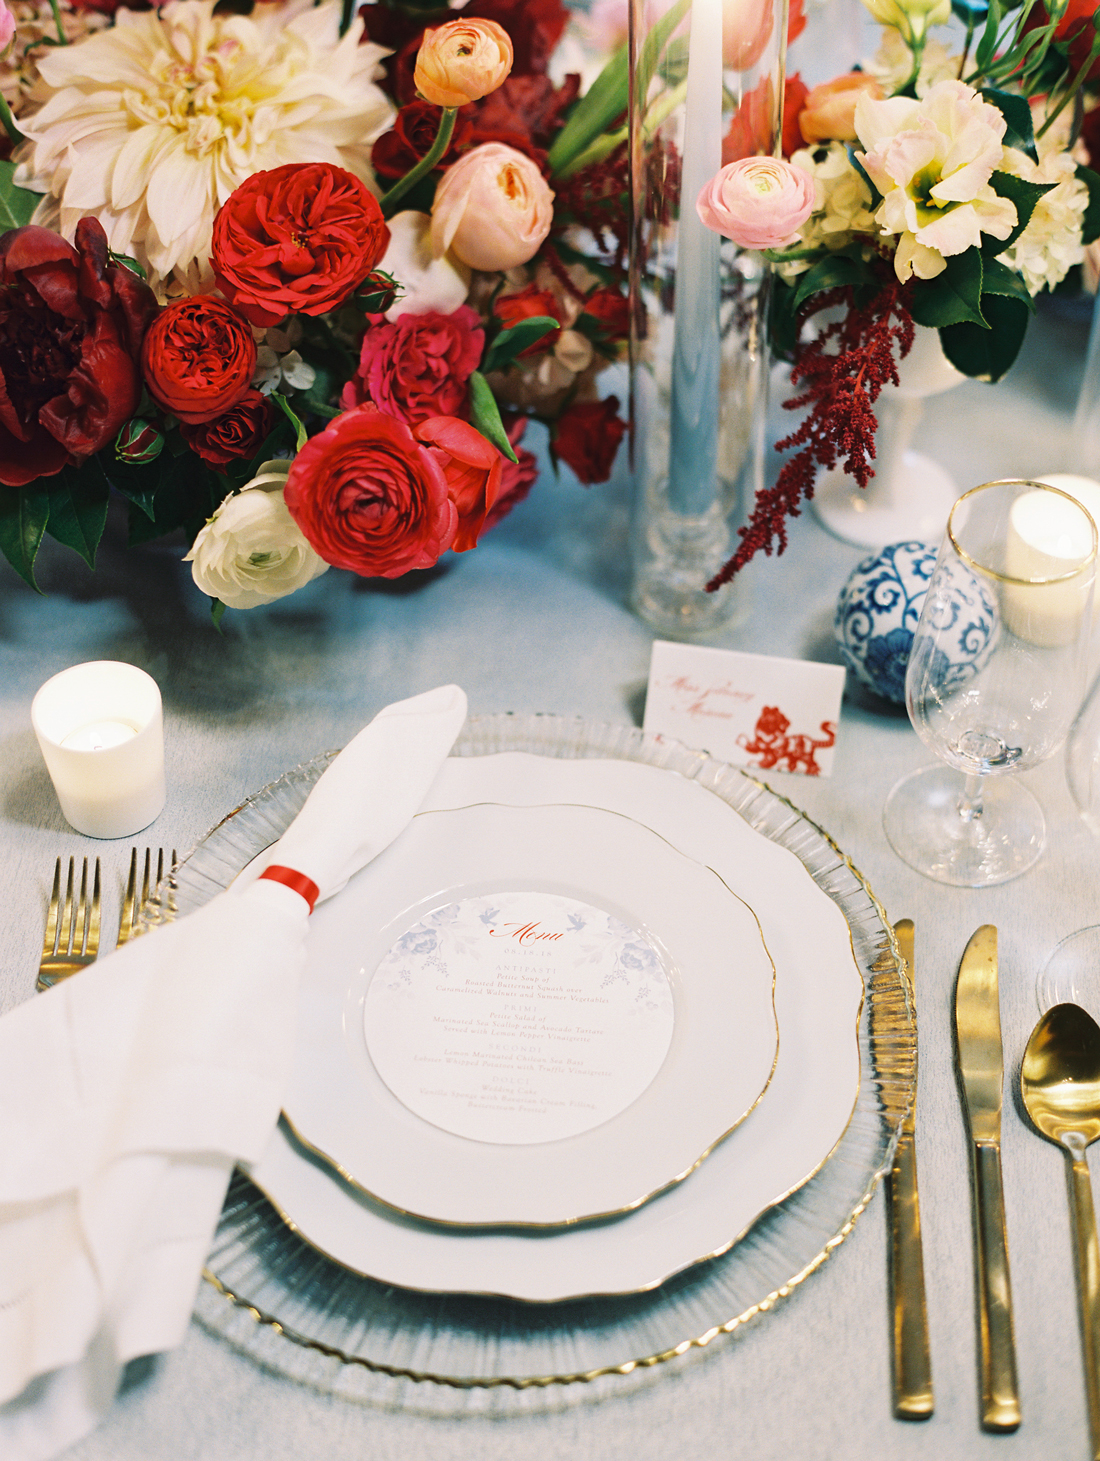 gold trimmed white plates with gold silverware and floral centerpieces